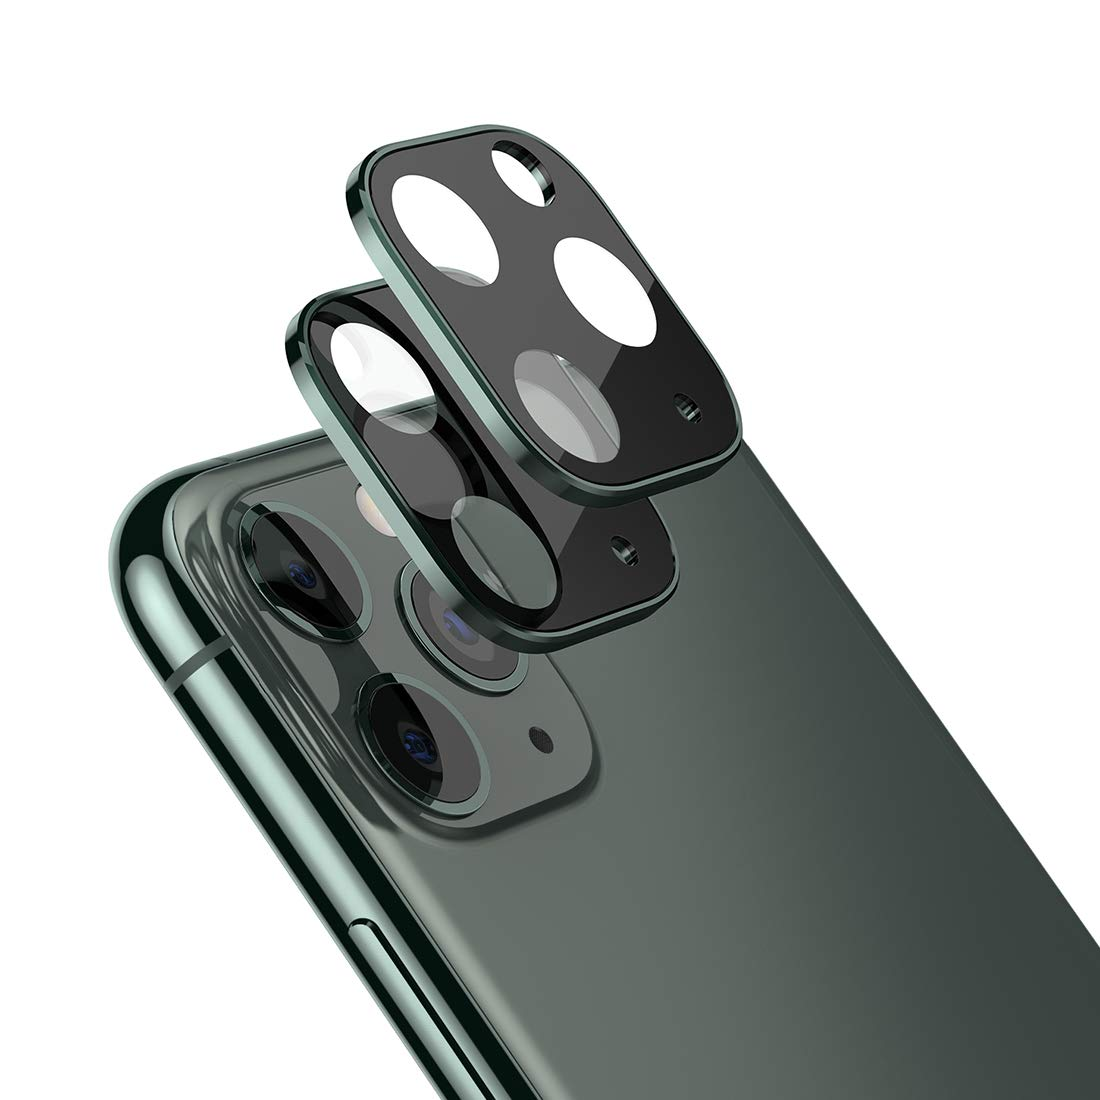 Protector De Camara Para For iPhone 11 Pro/iPhone 11 Pro Max